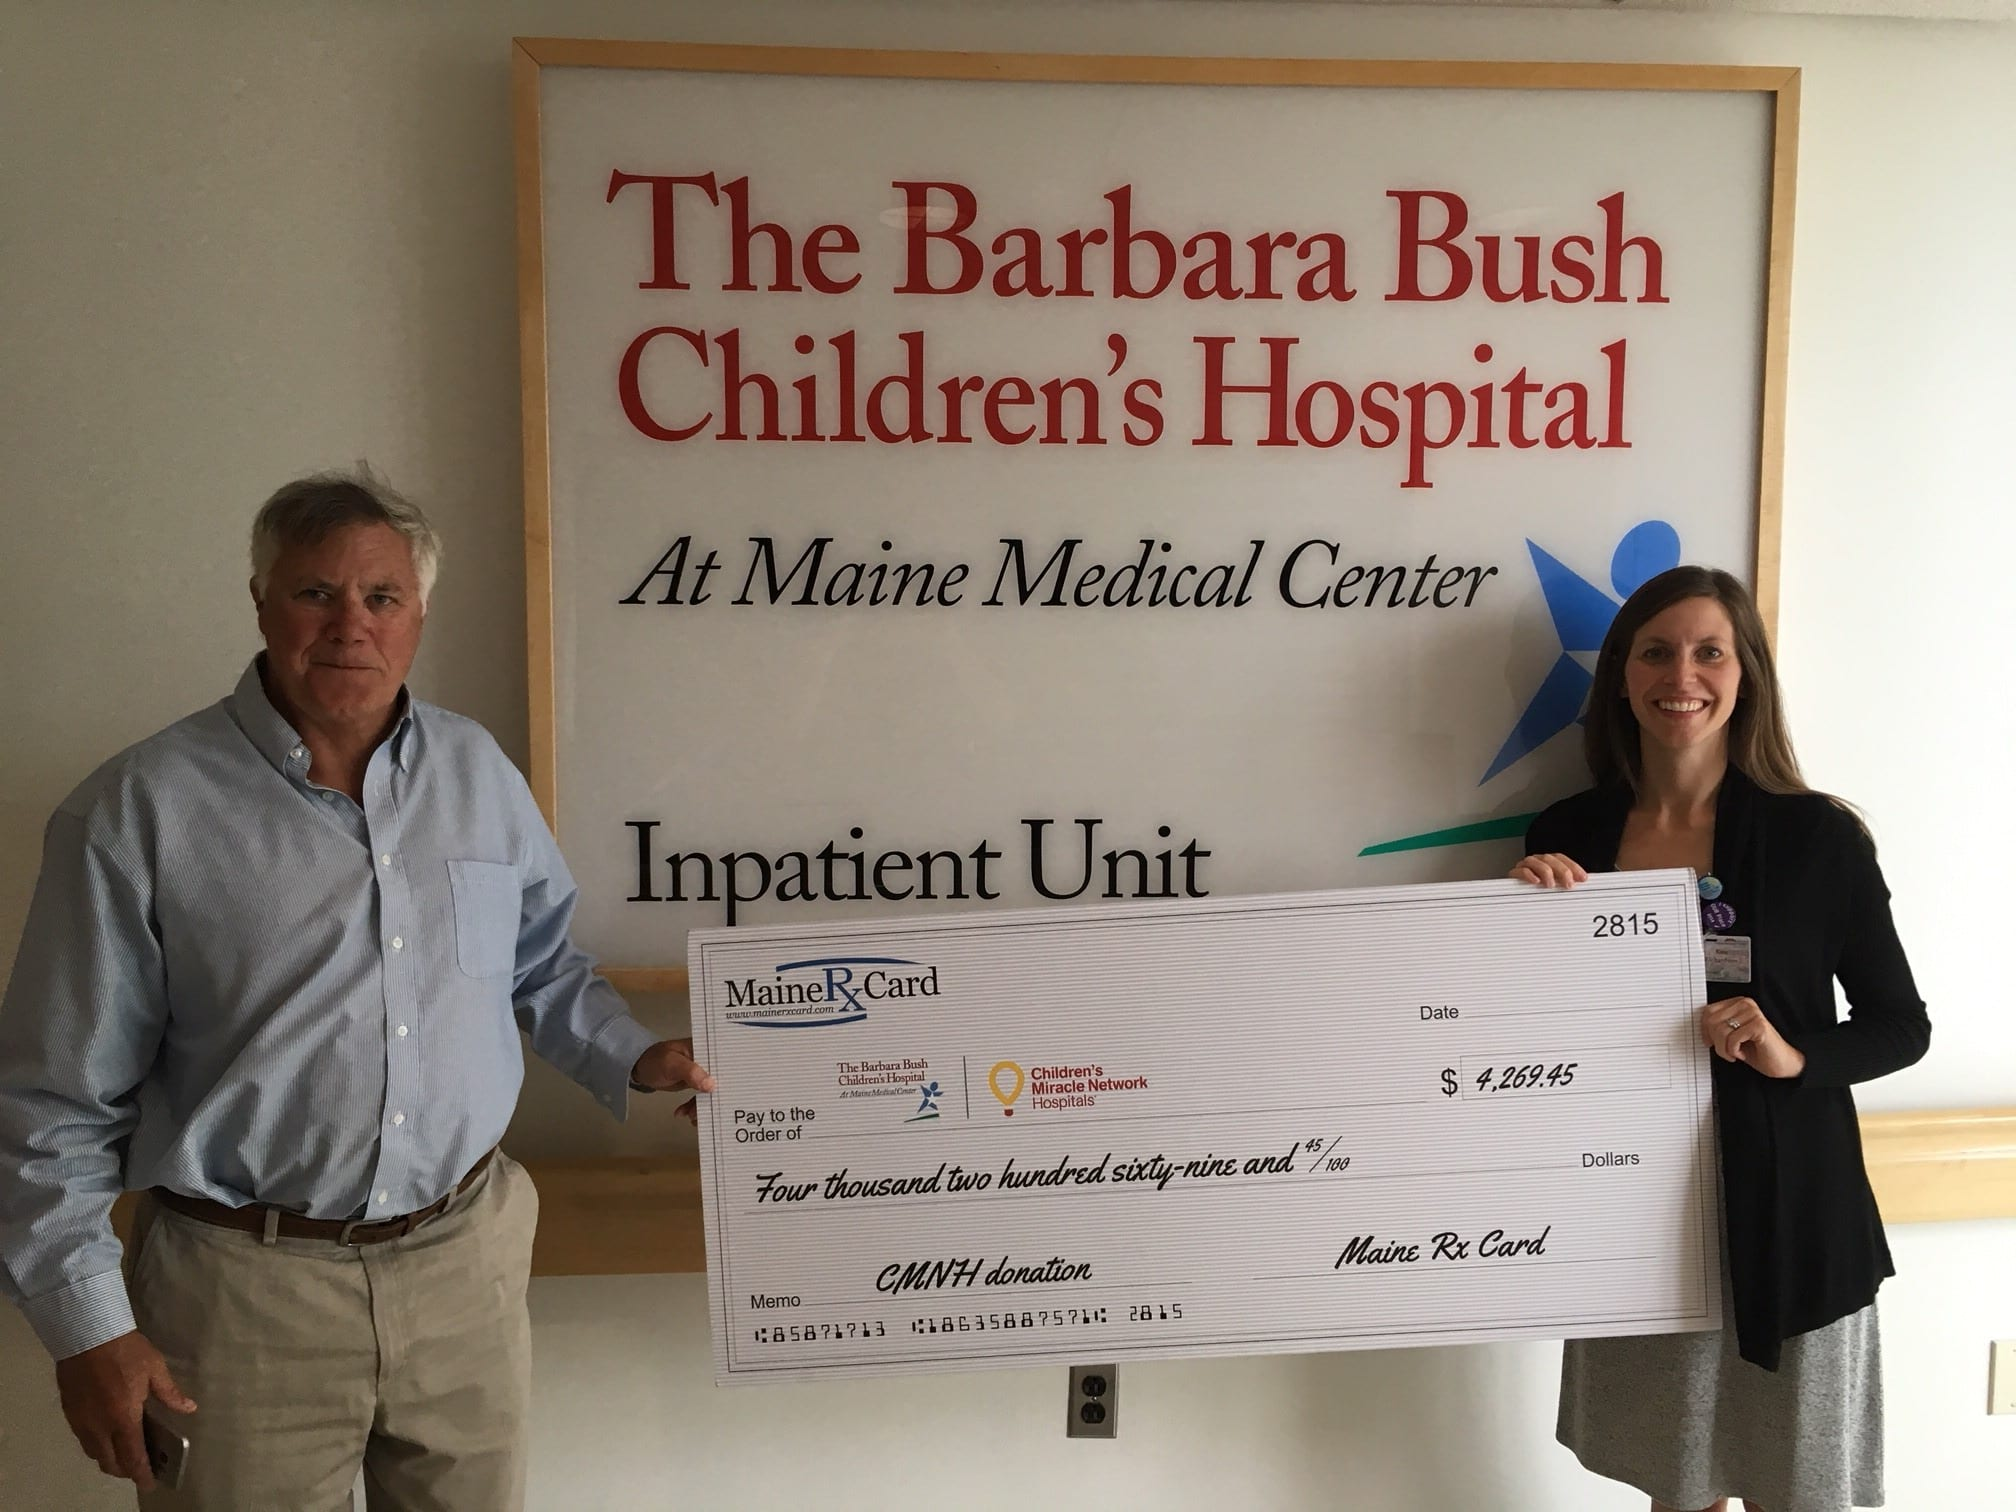 Maine Rx Card, Powered by United Networks of America is a Proud Partner of The Barbara Bush Children's Hospital